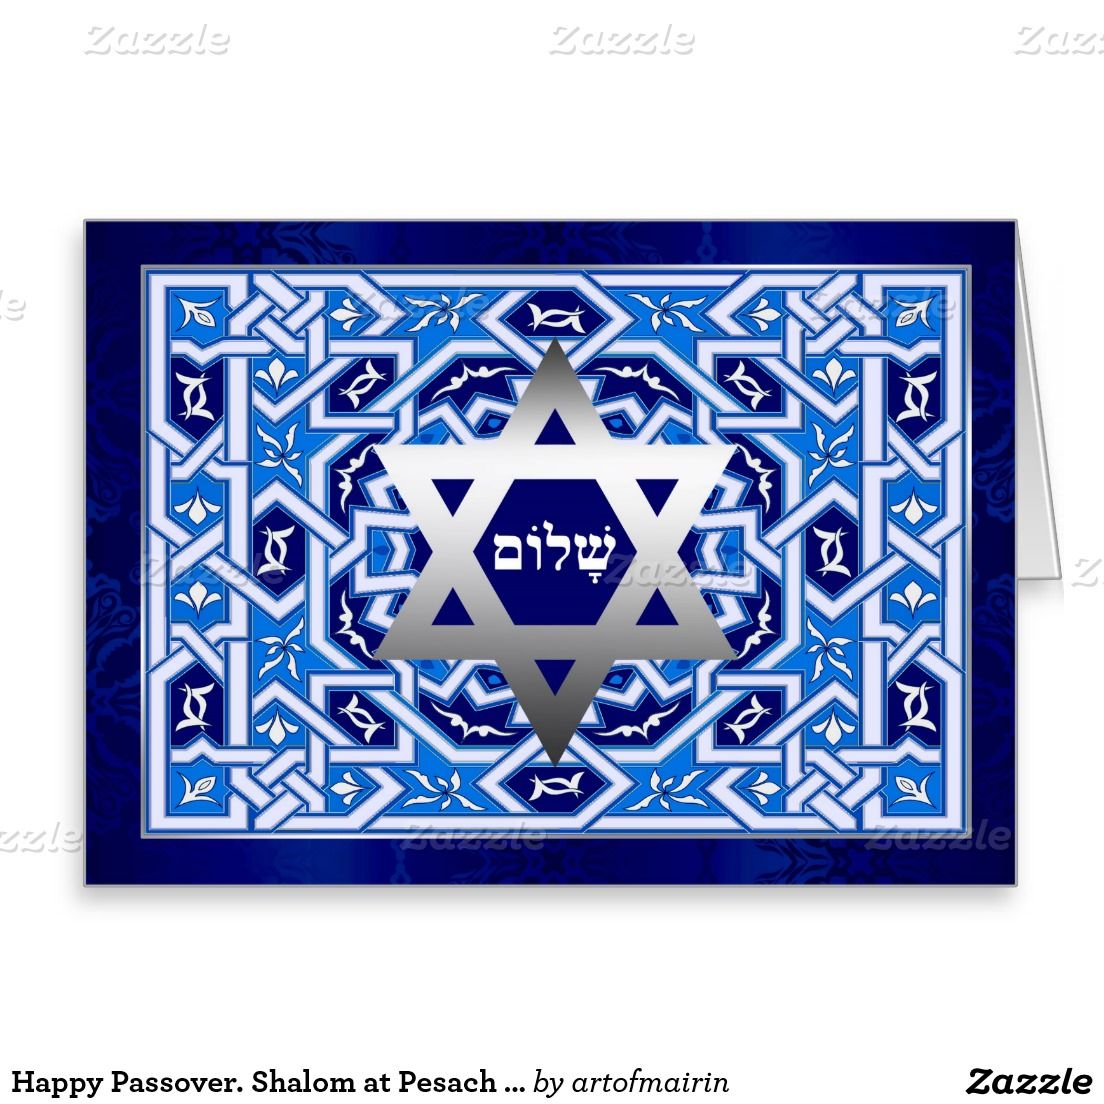 Happy passover shalom at pesach greeting cards happy pesach happy passover shalom at pesach greeting cards m4hsunfo Choice Image